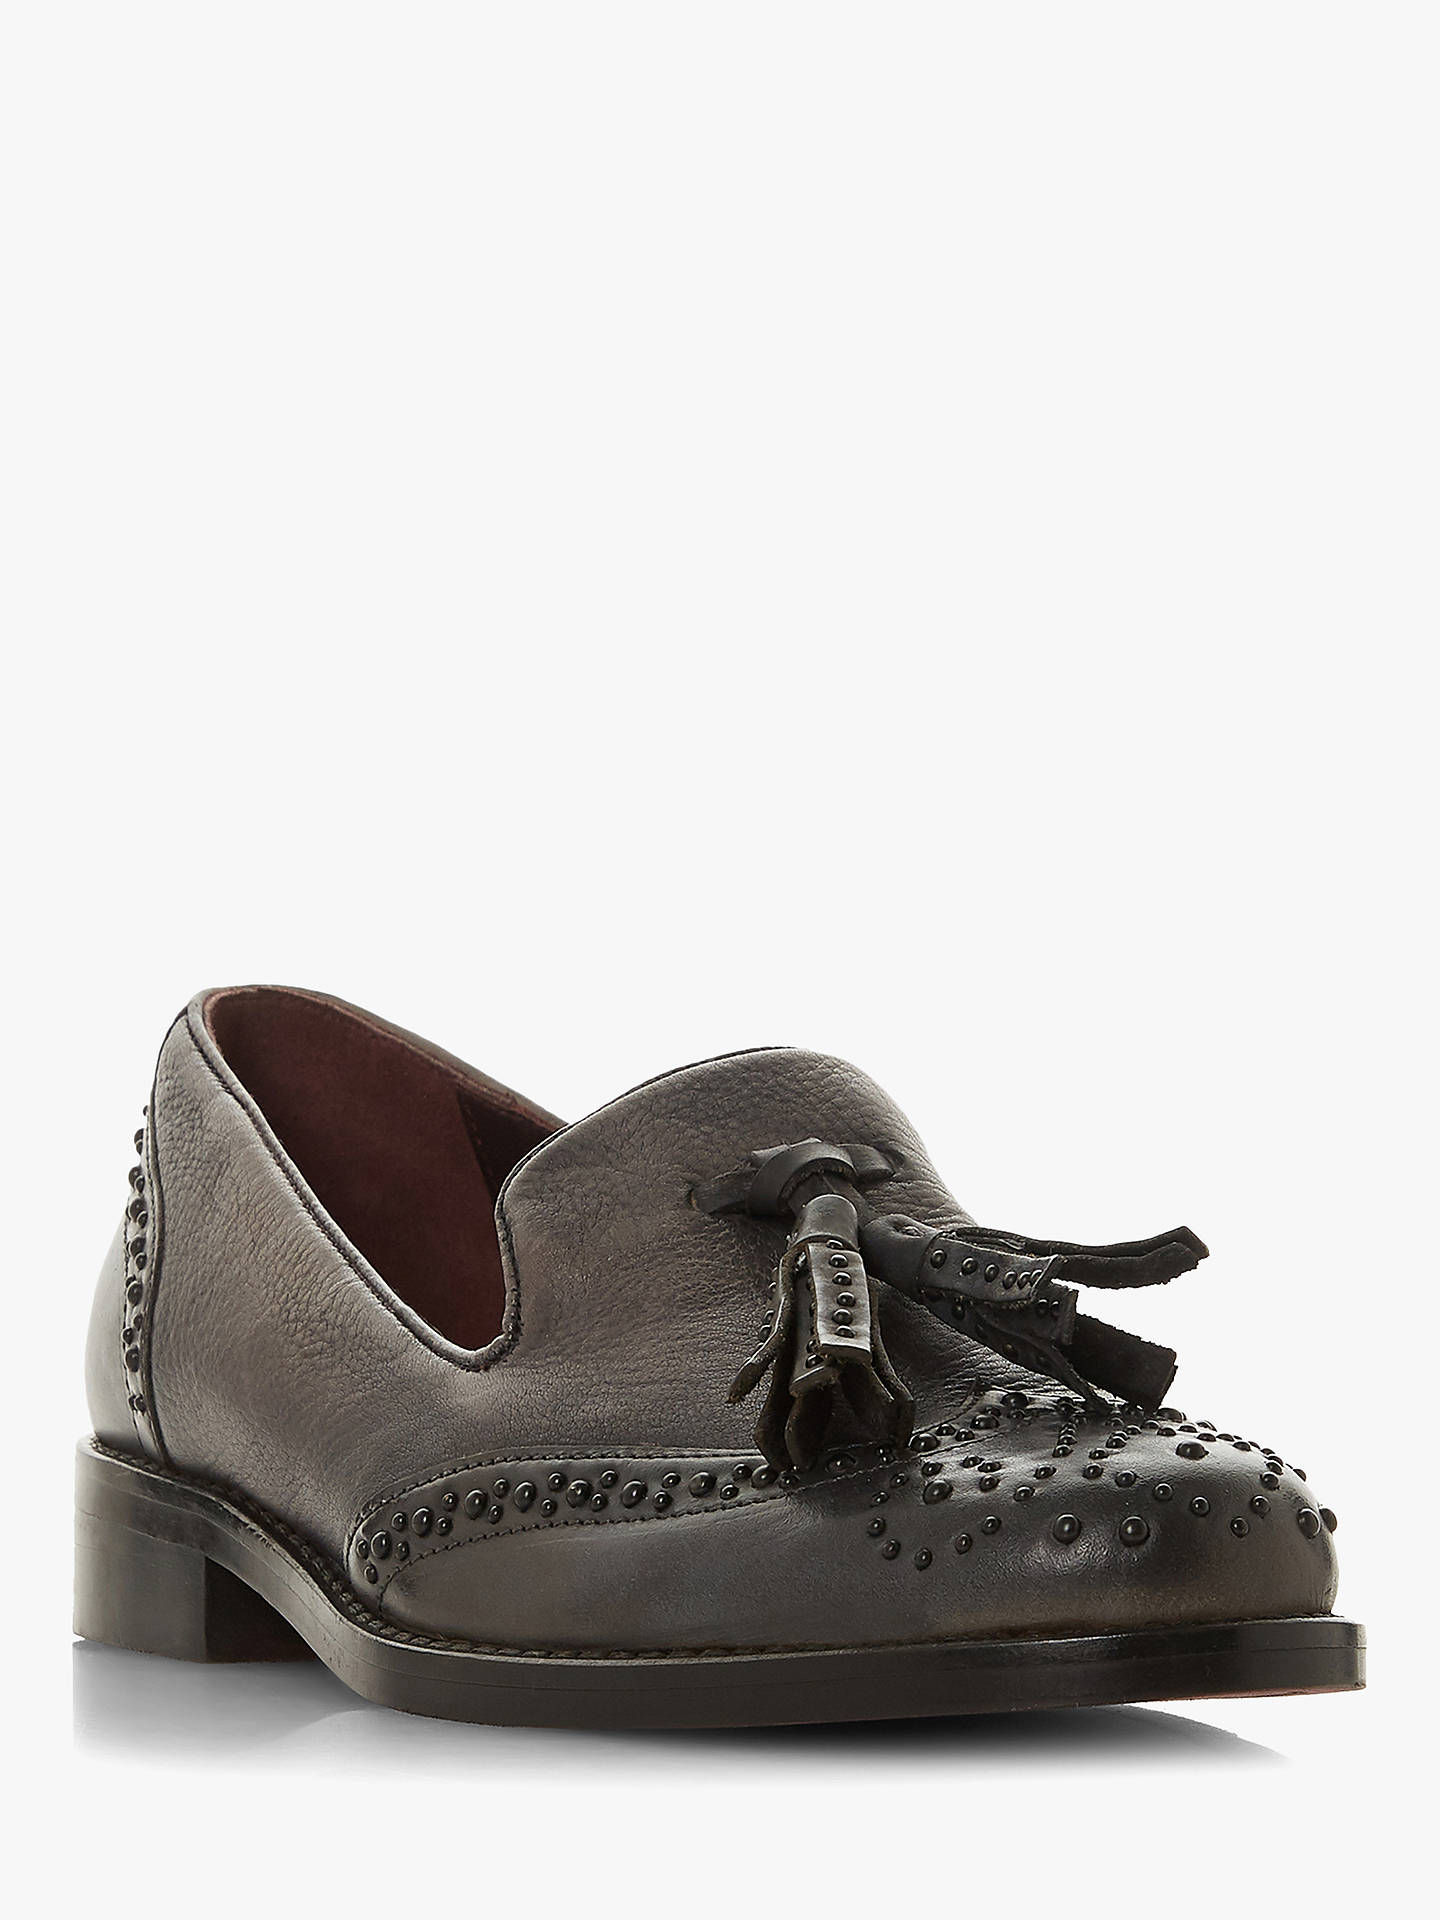 Buy Bertie Grenich Studded Loafers, Grey, 3 Online at johnlewis.com